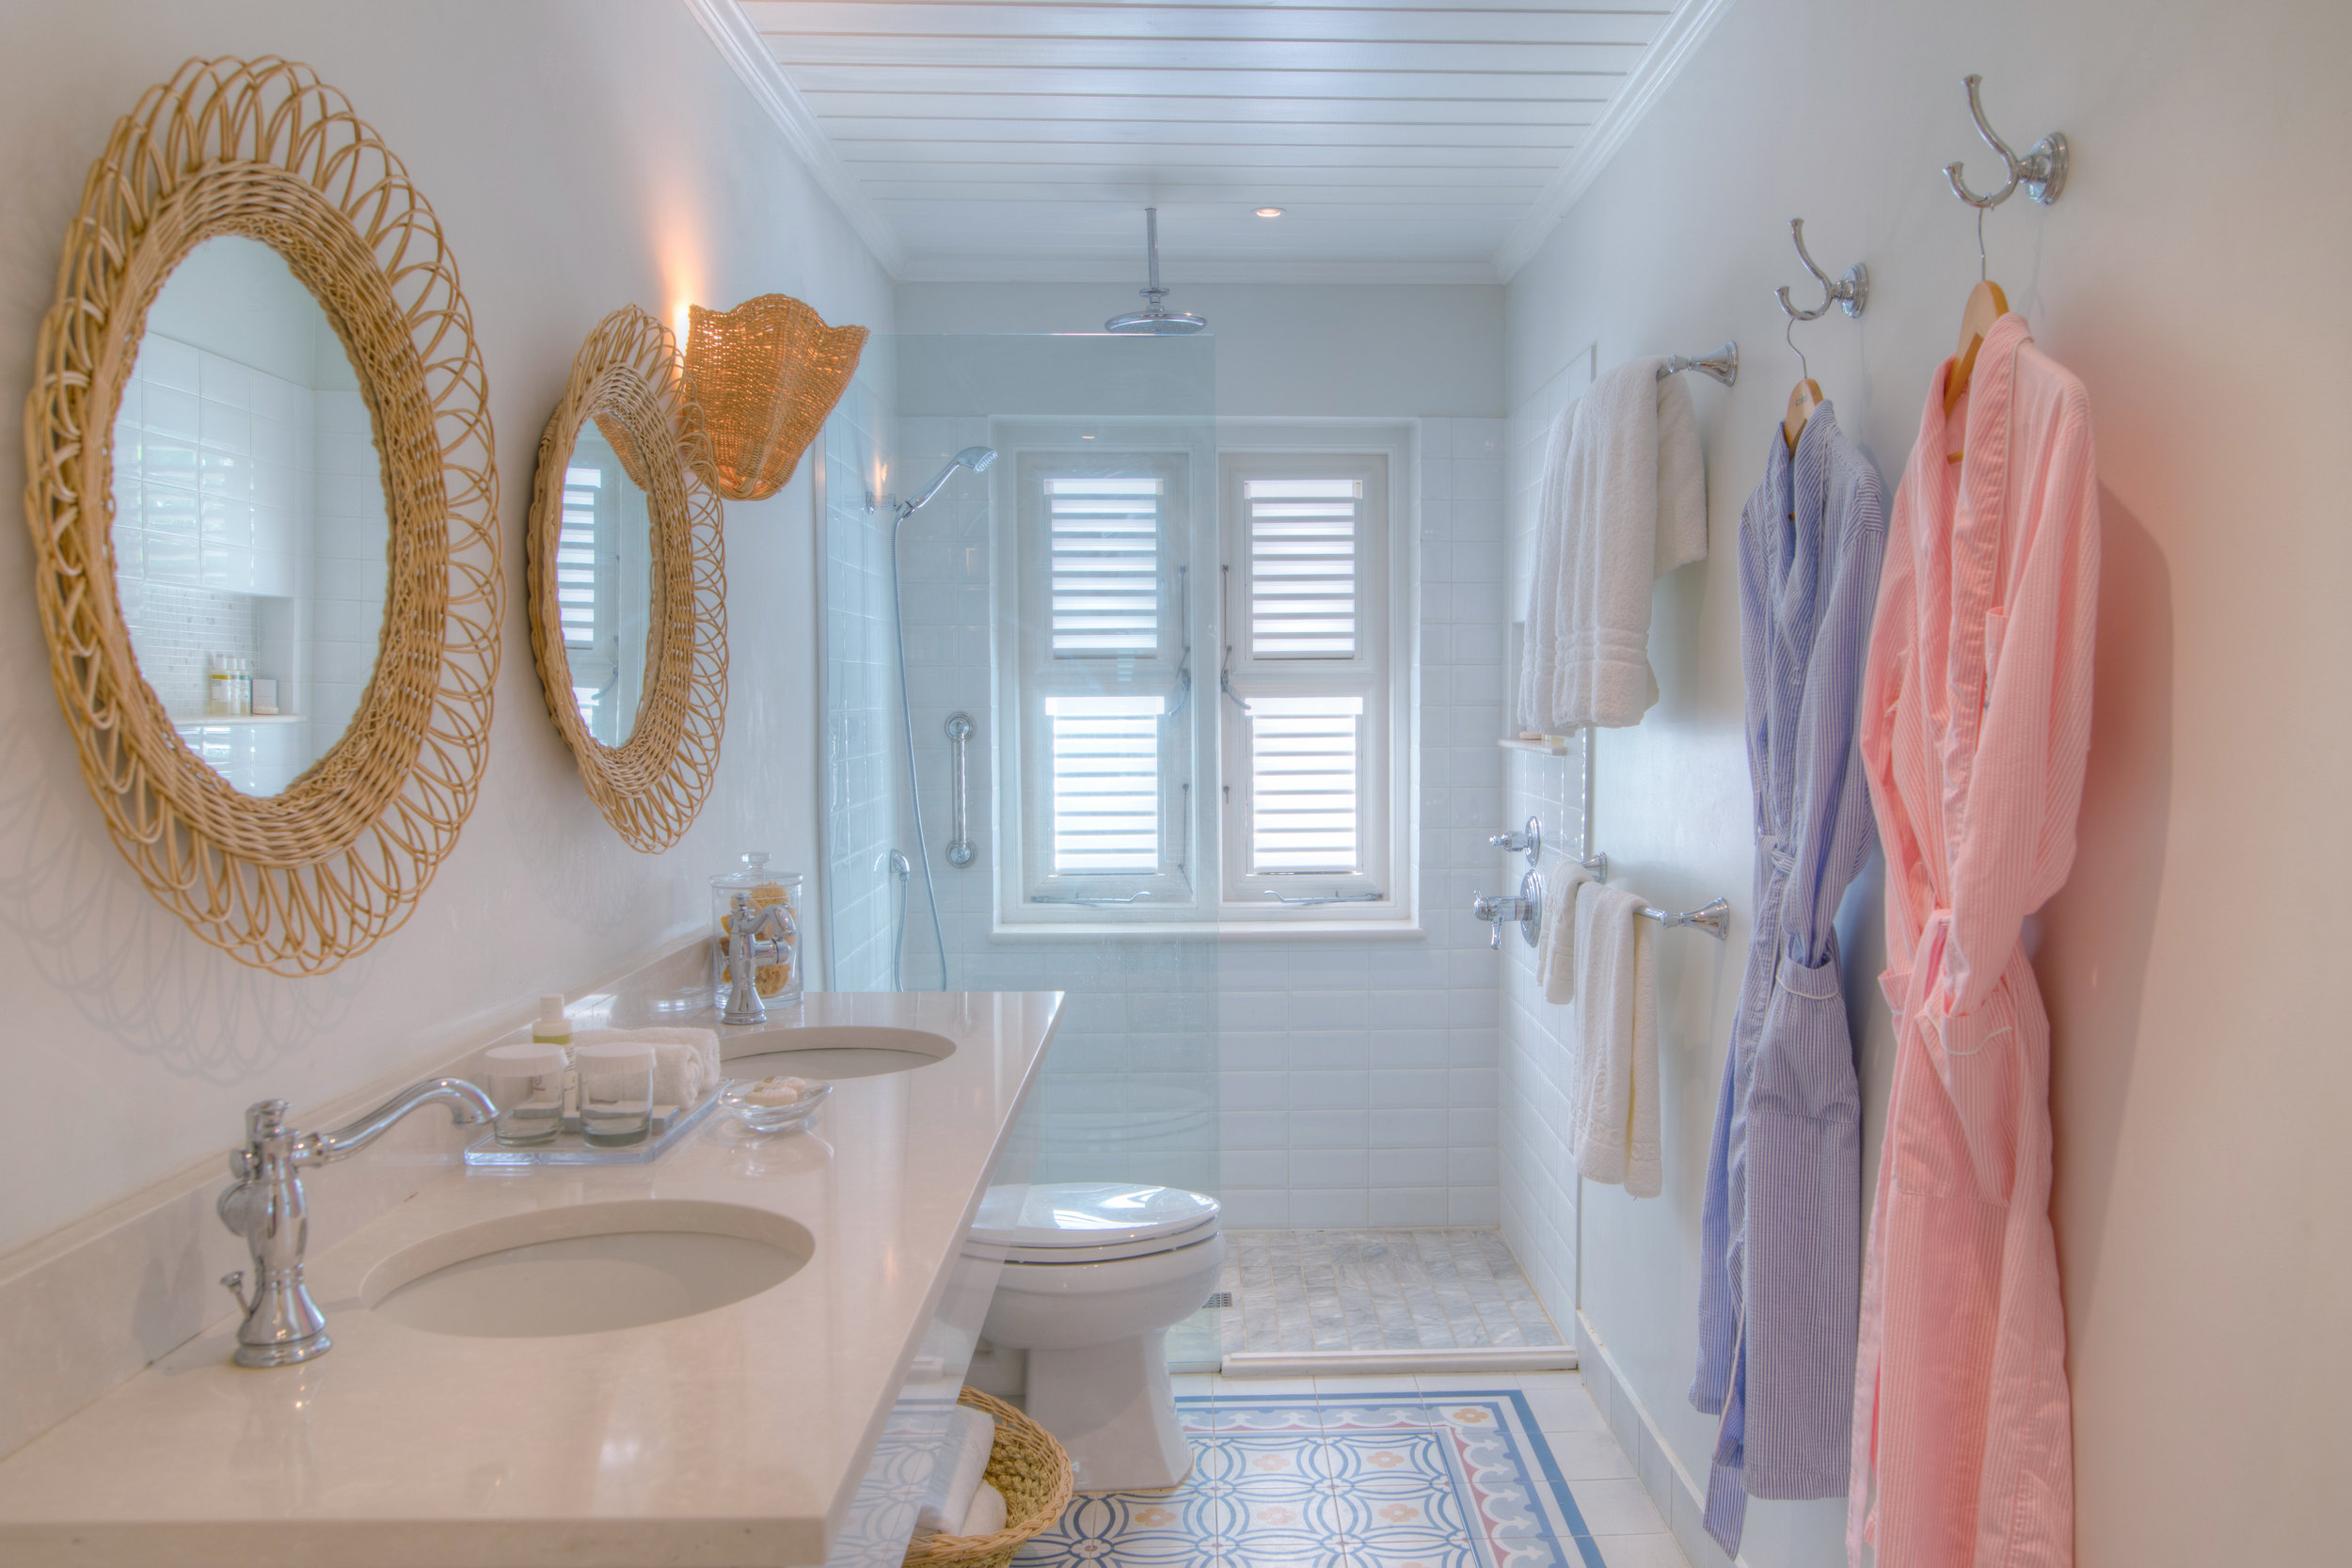 4 Ocean Front Suite - Bathroom.jpg